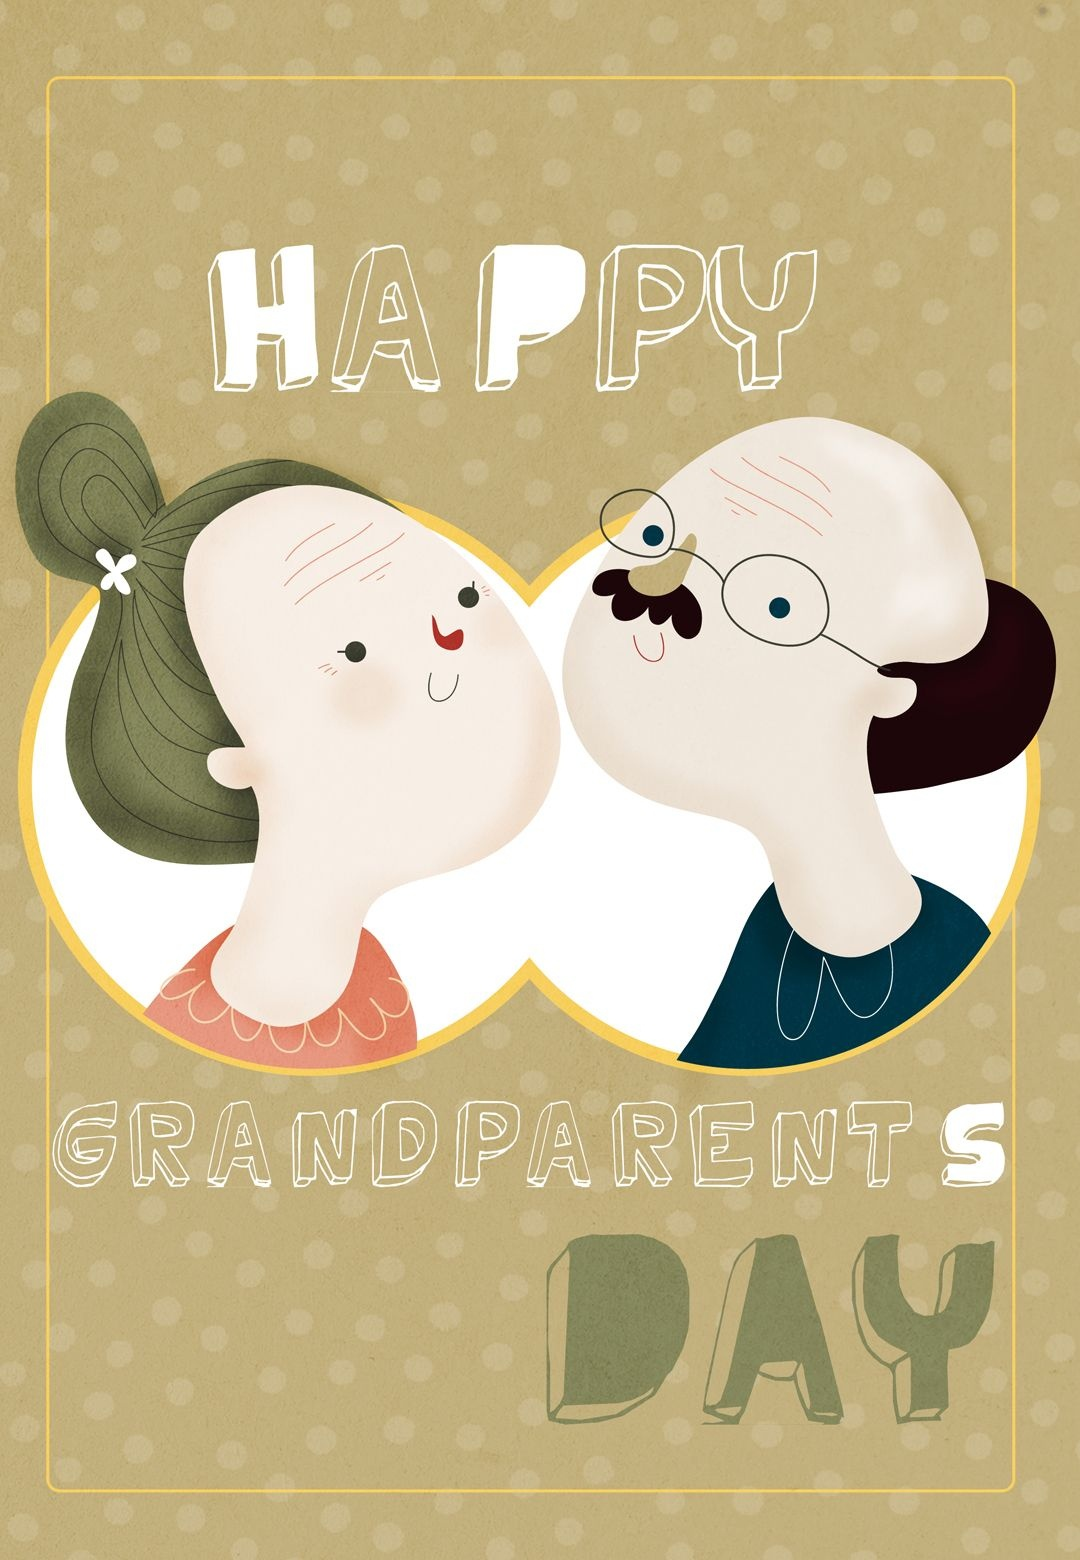 Free Printable Happy Grandparents Day Greeting Card | Grandparents - Grandparents Day Cards Printable Free